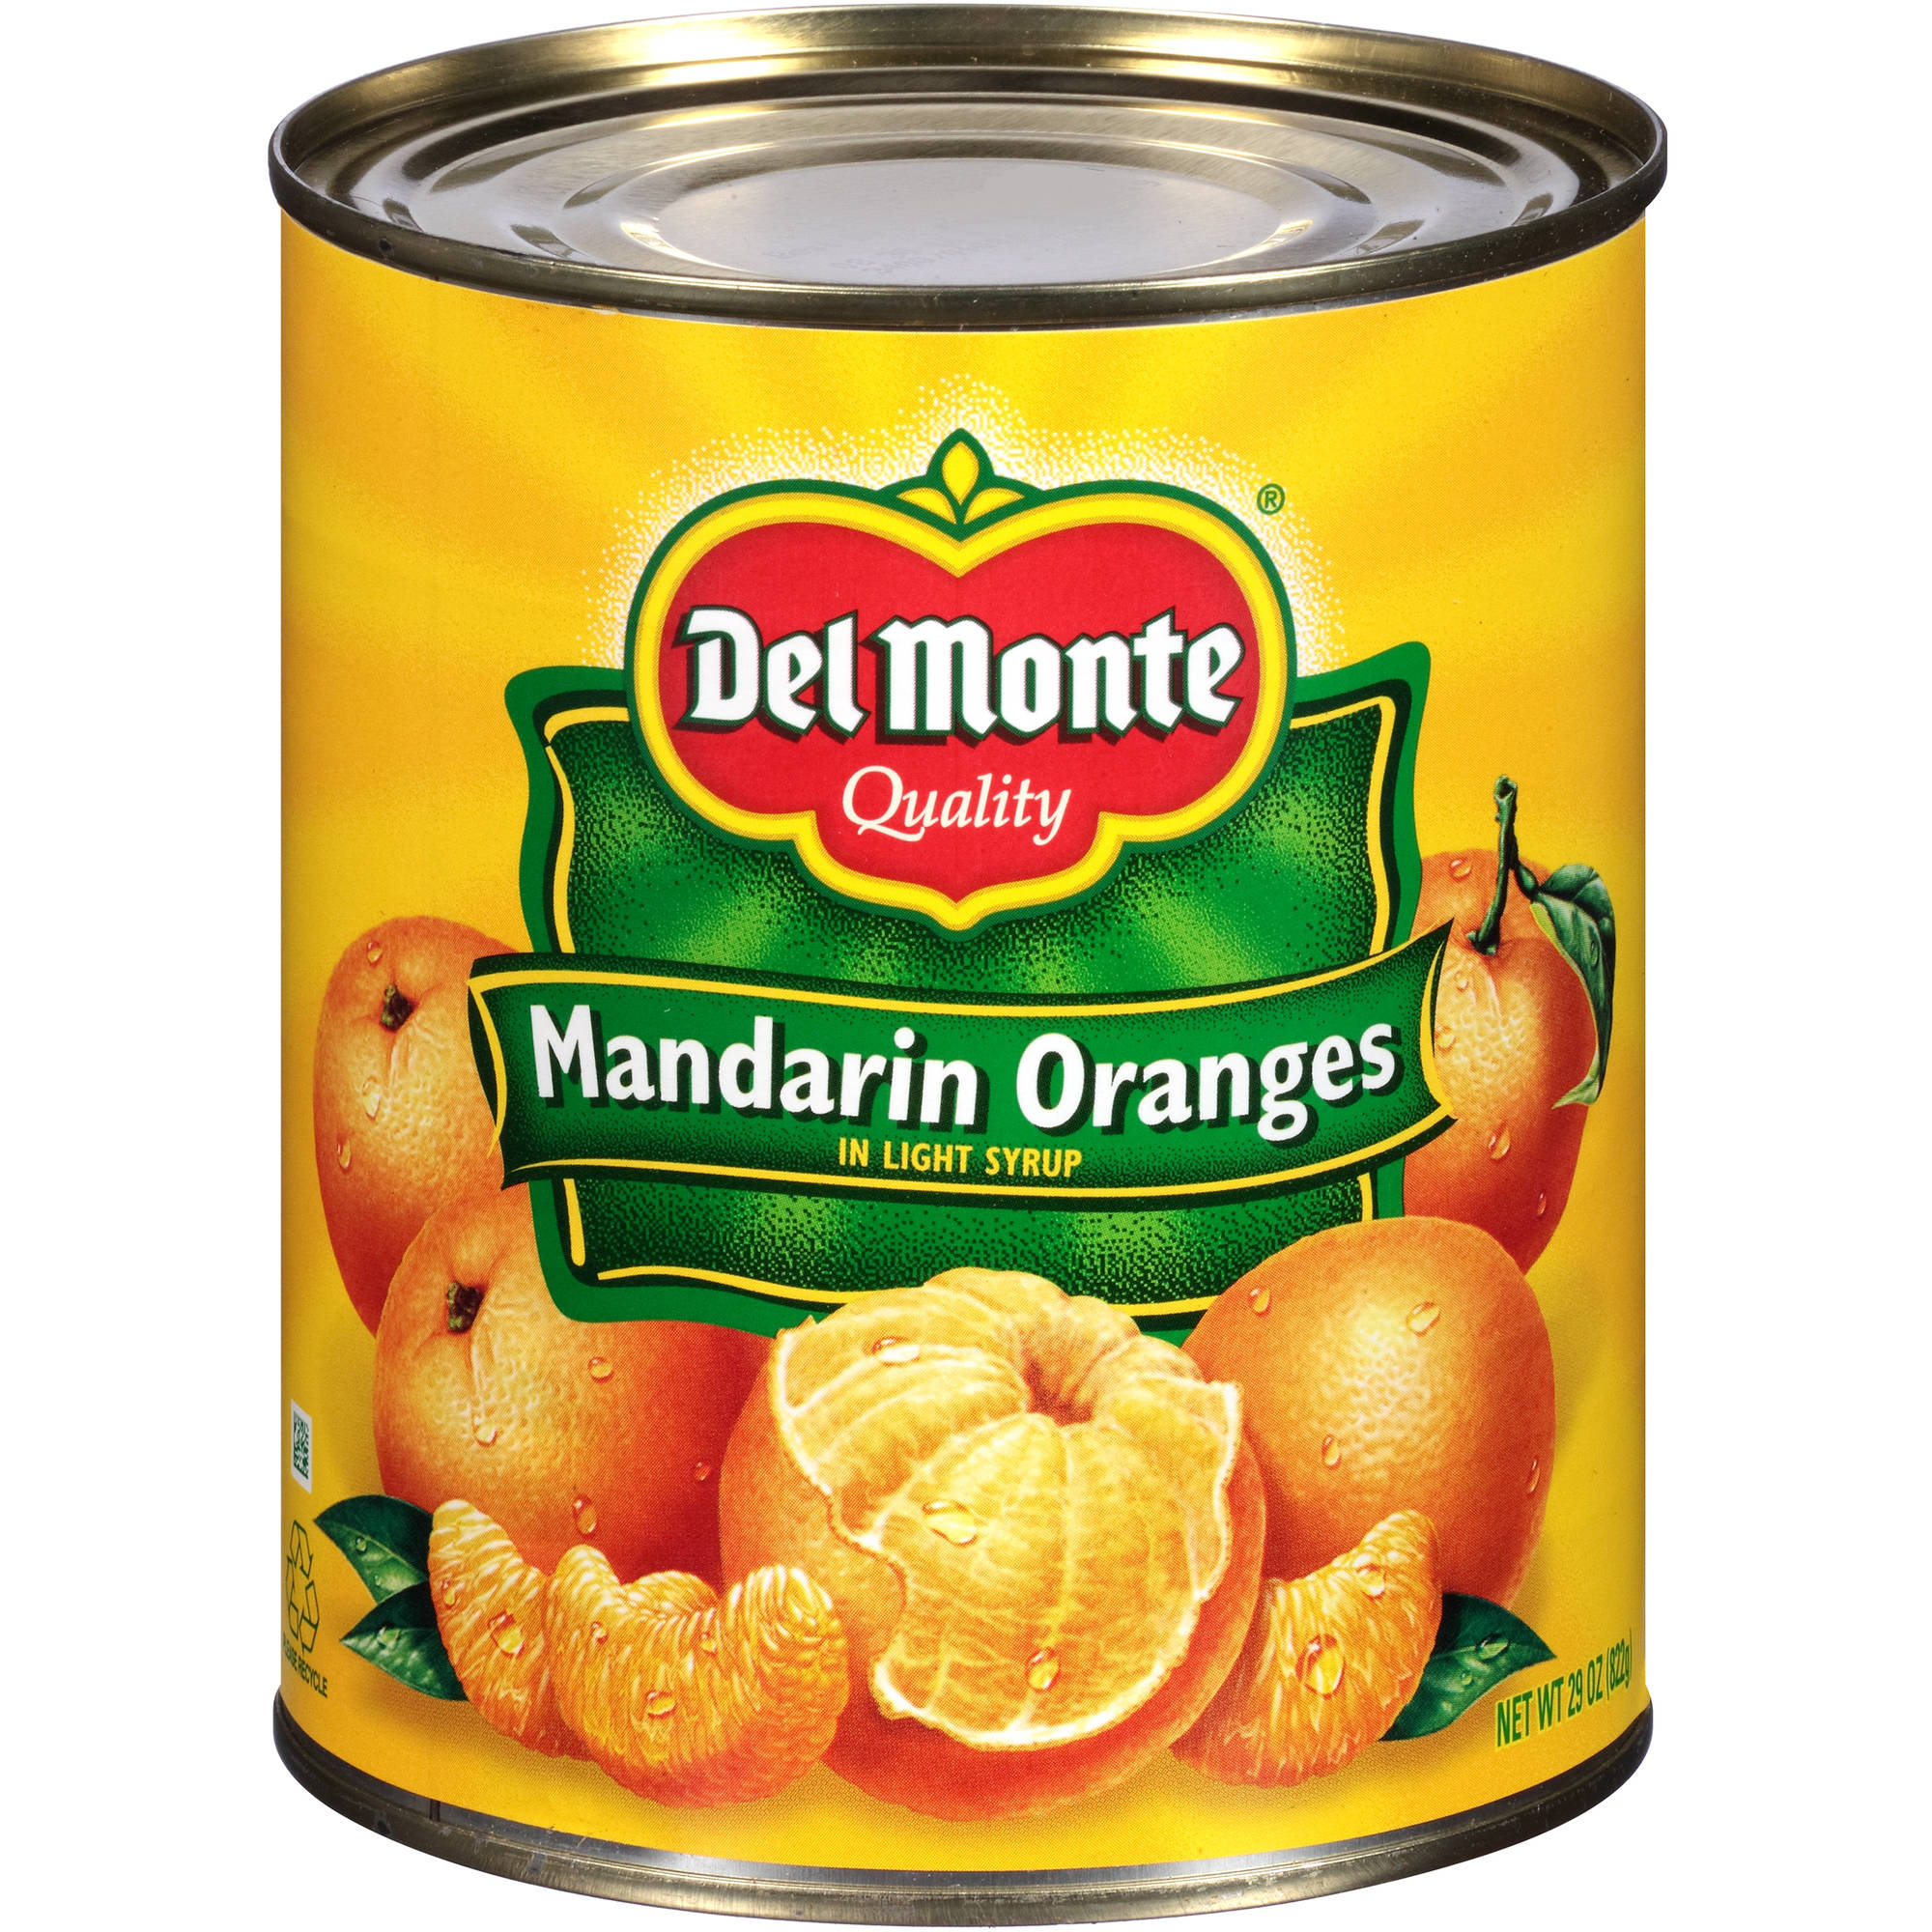 Del Monte Mandarin Oranges in Light Syrup, 29 oz